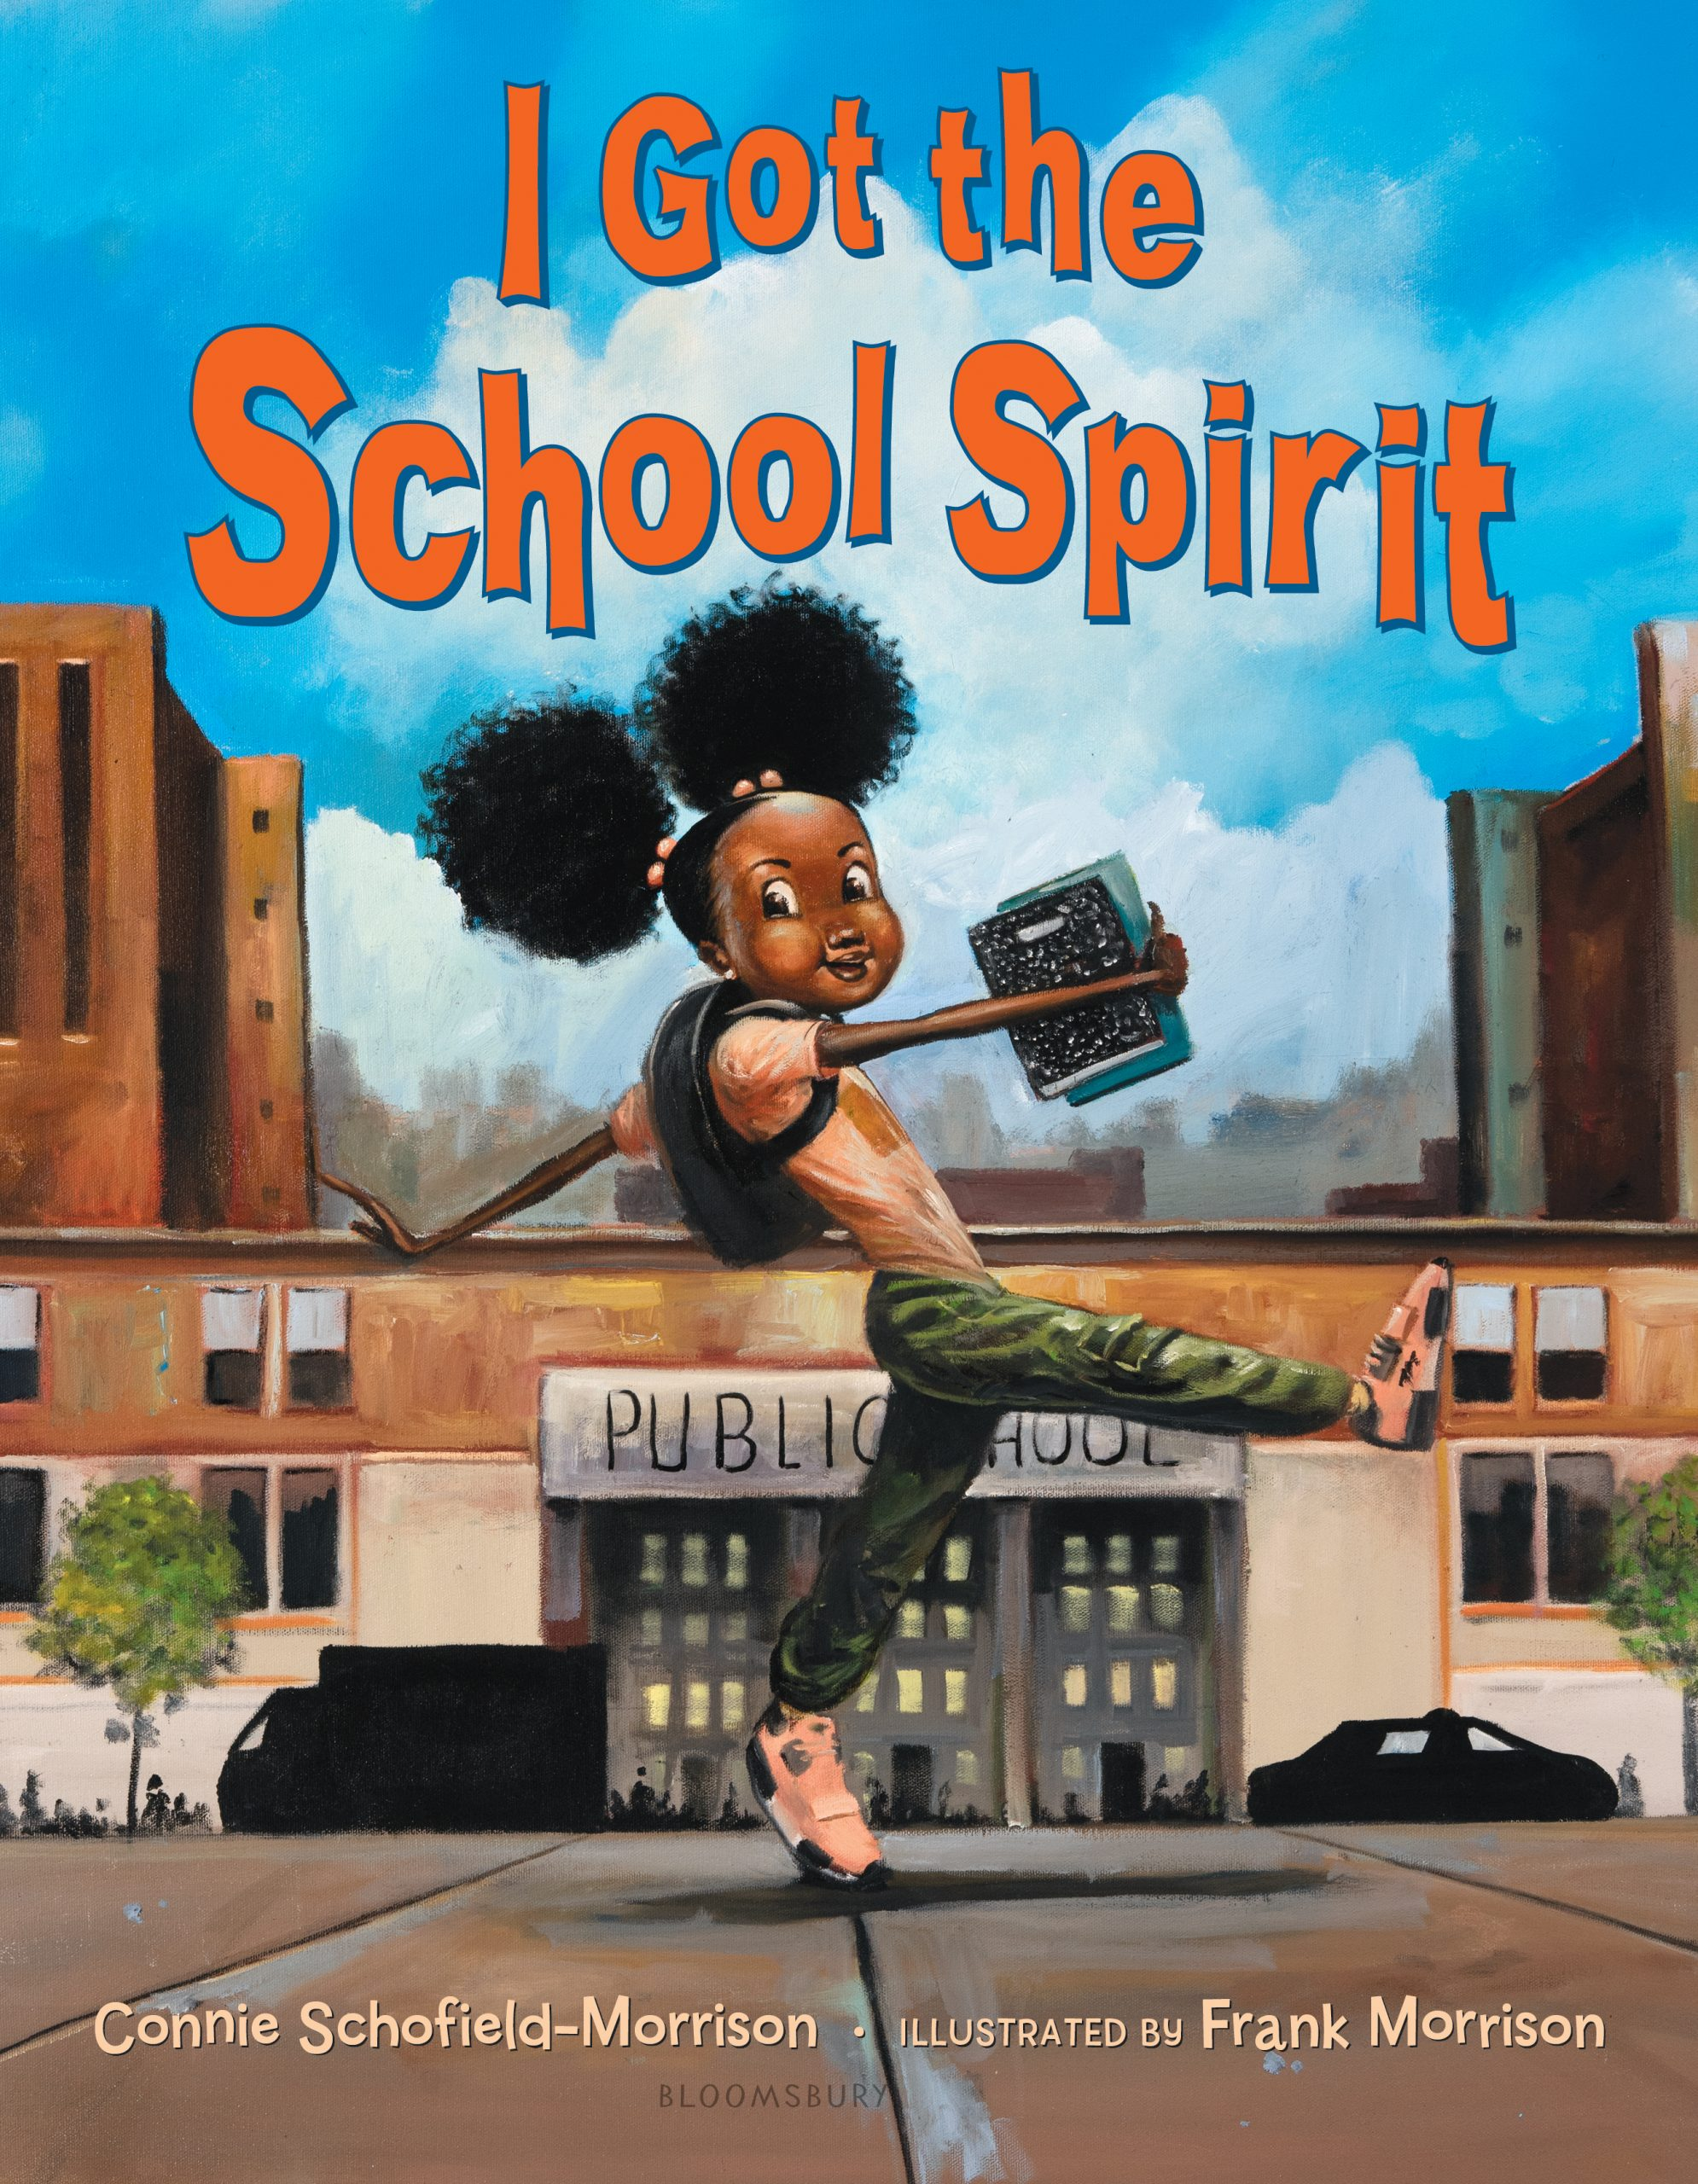 I Got the School Spirit by Connie Schofield-Morrison, illustrated by Frank Morrison